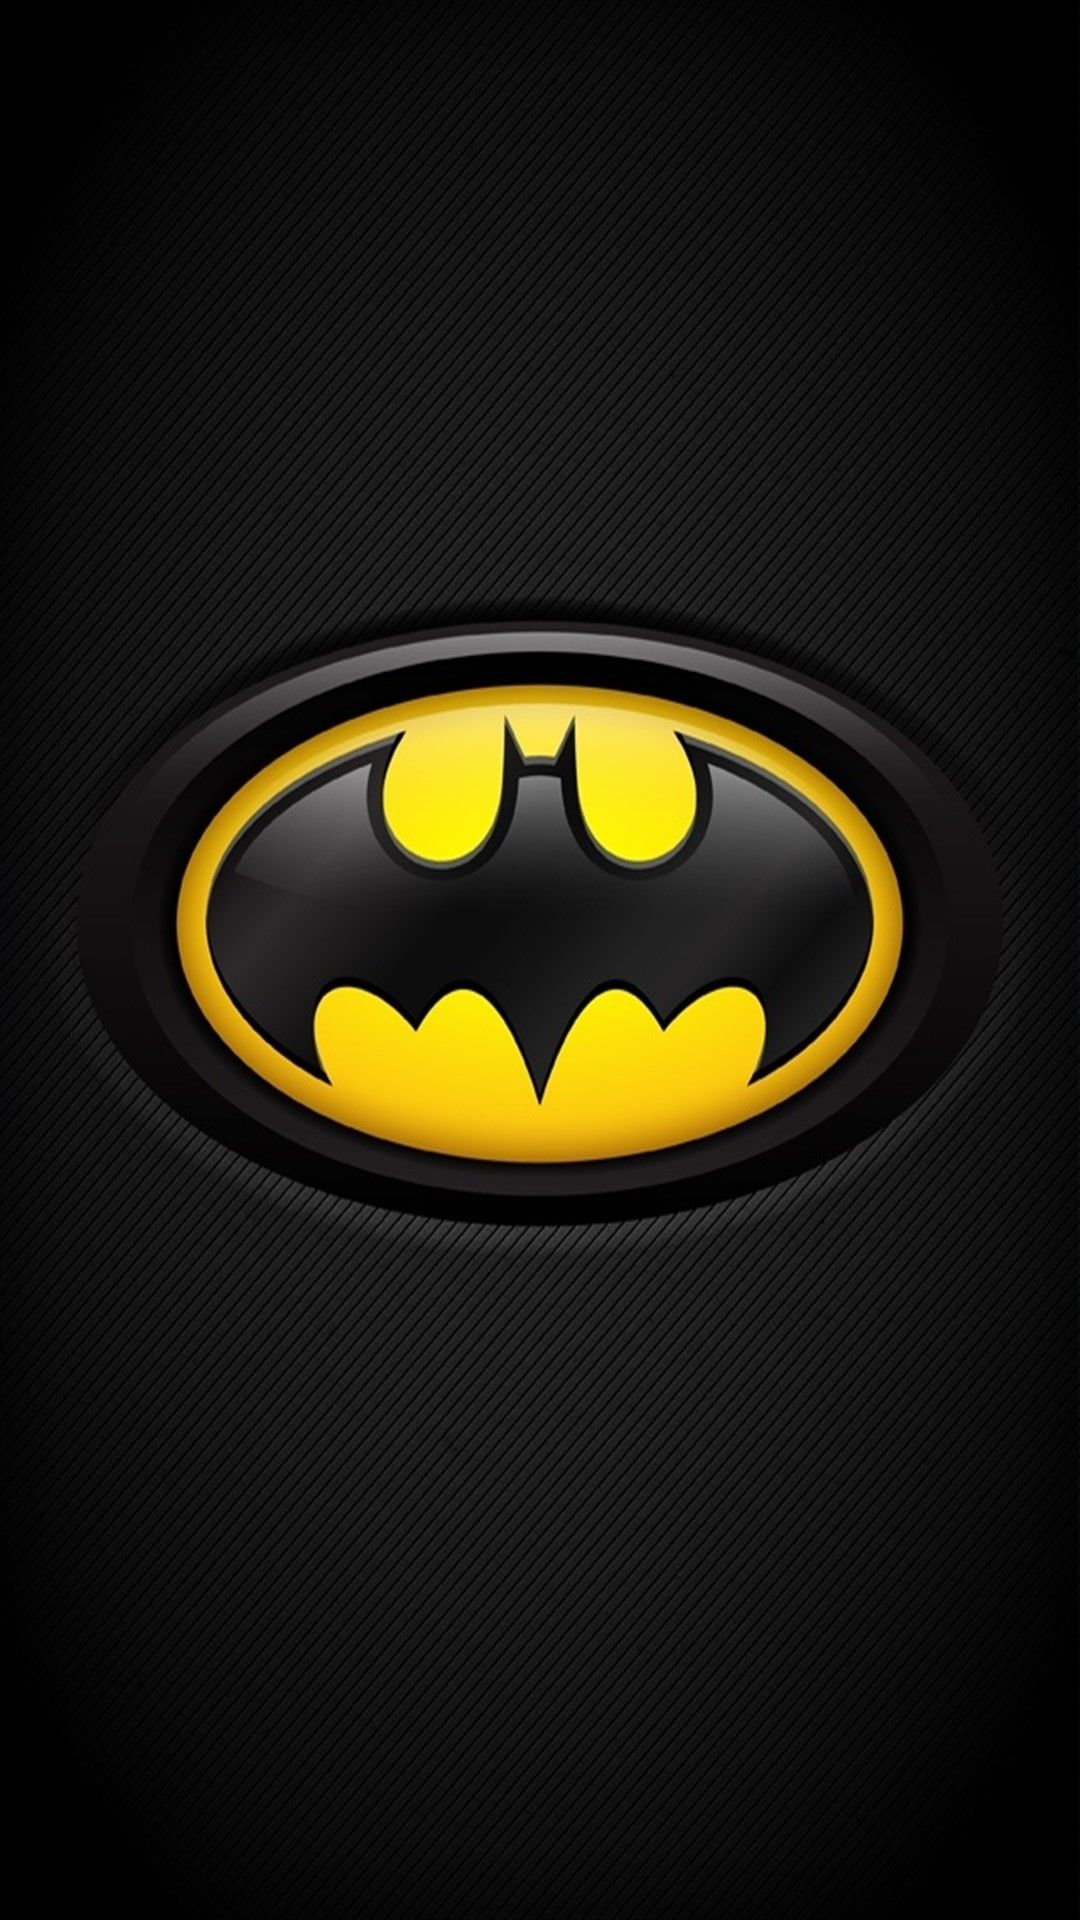 Phone wallpaper from Zedge Batman insignia (With images